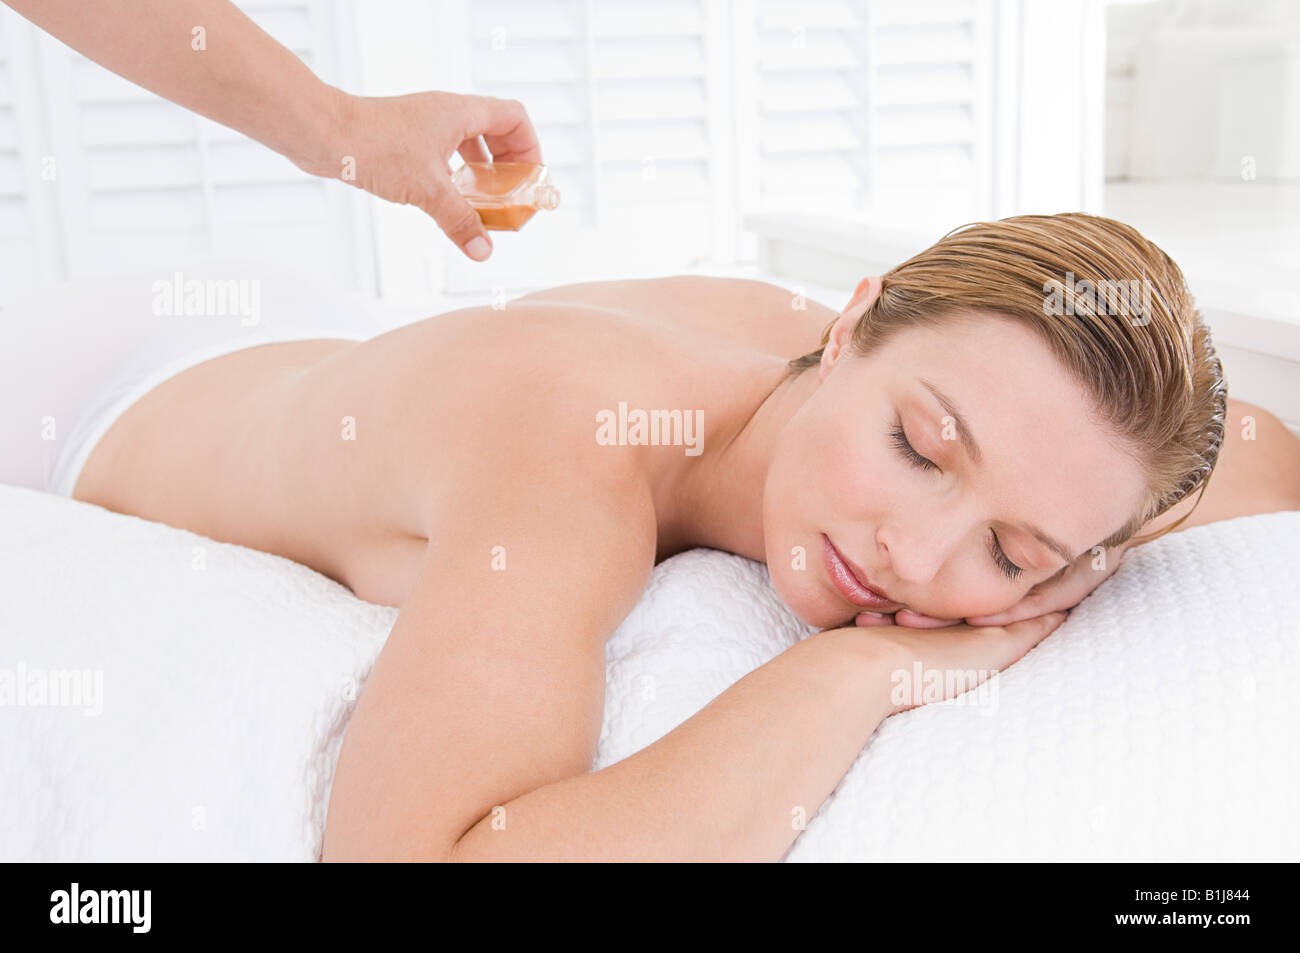 A masseuse applying oil to a womans back - Stock Image